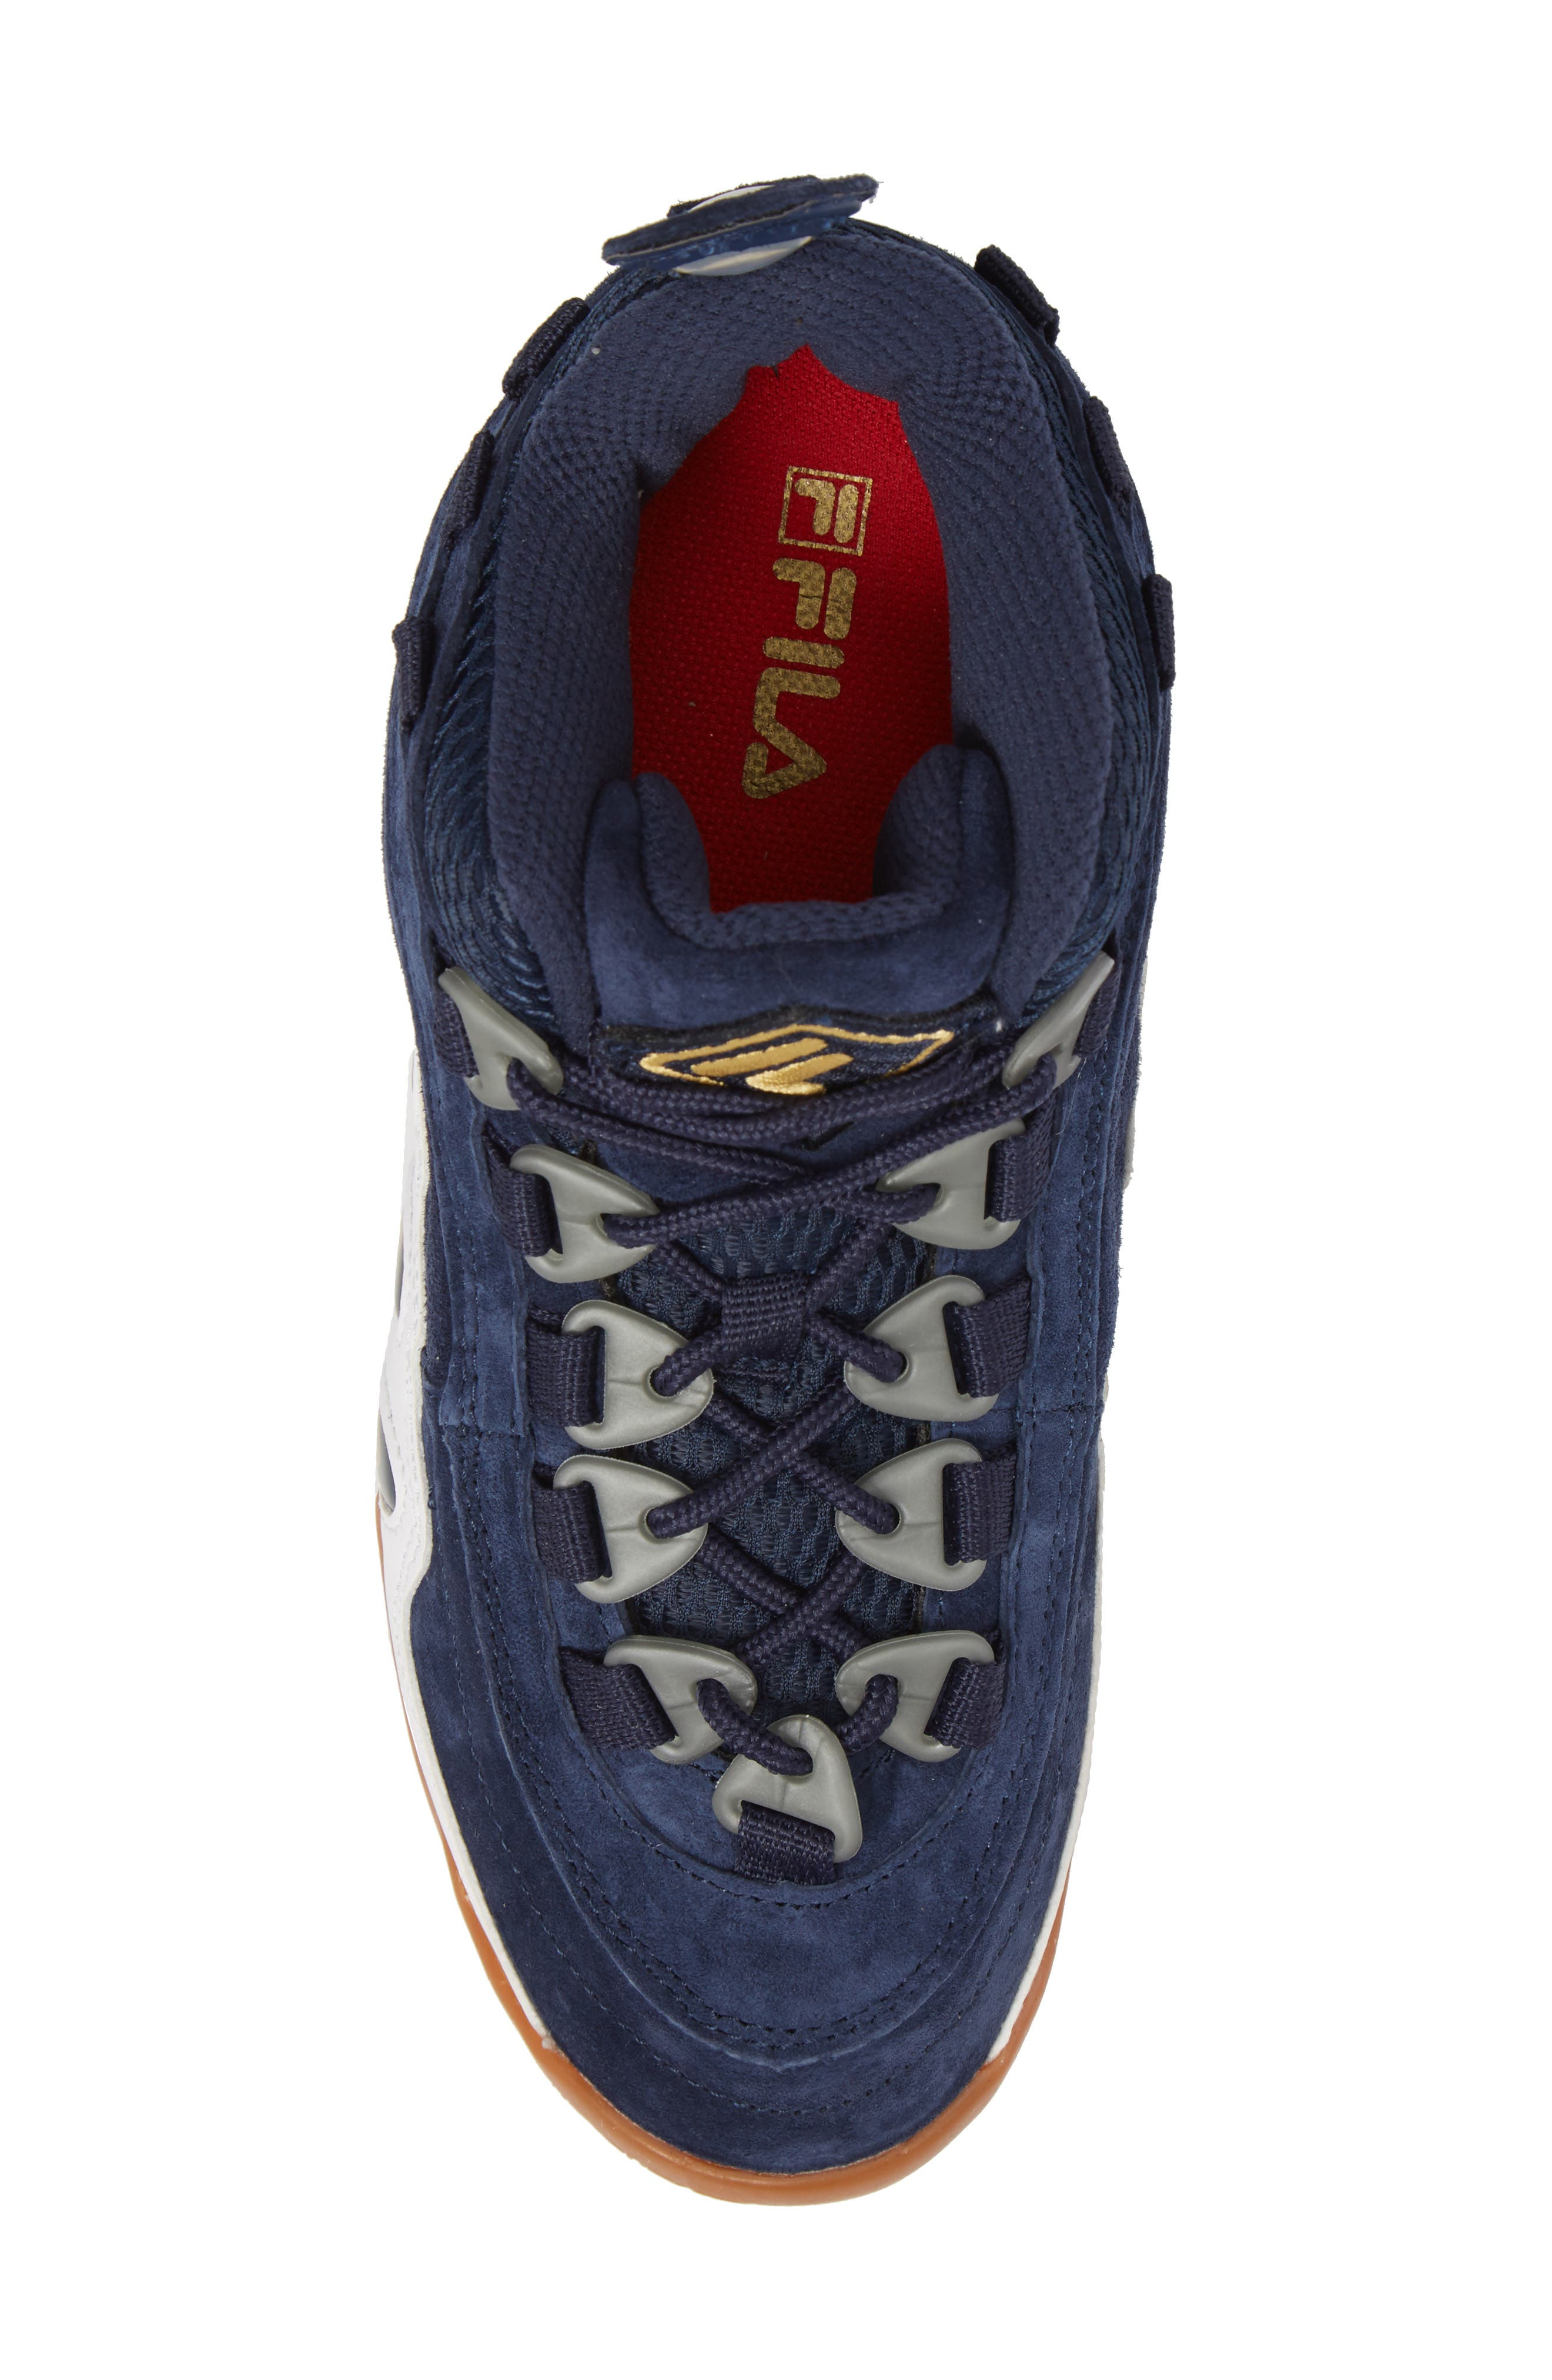 FILA, Bubbles Mid Top Sneaker Boot, Alternate thumbnail 5, color, NAVY/ GOLD/ WHITE